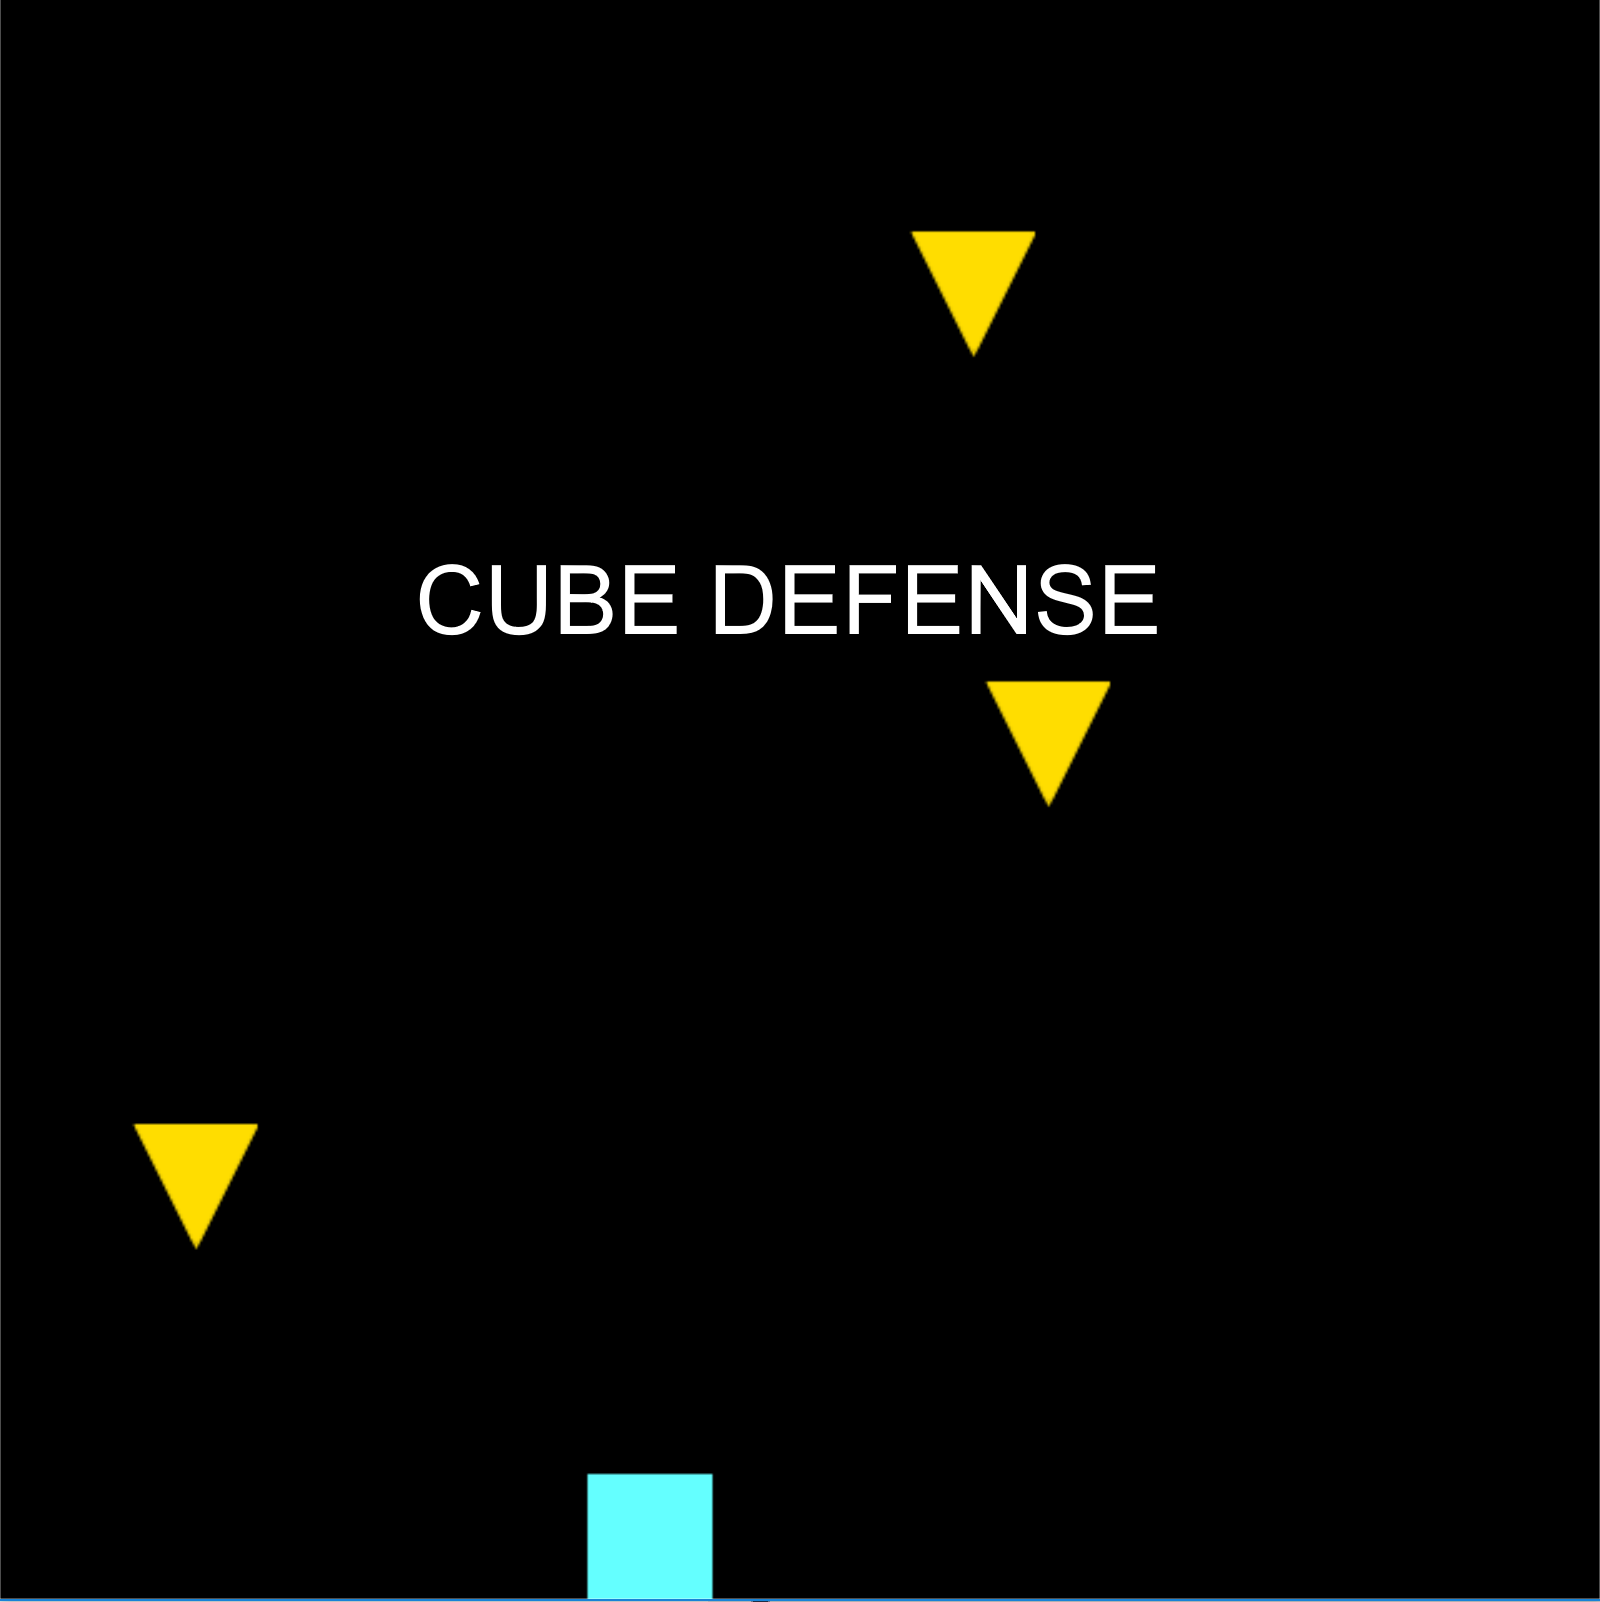 Cube Defense by